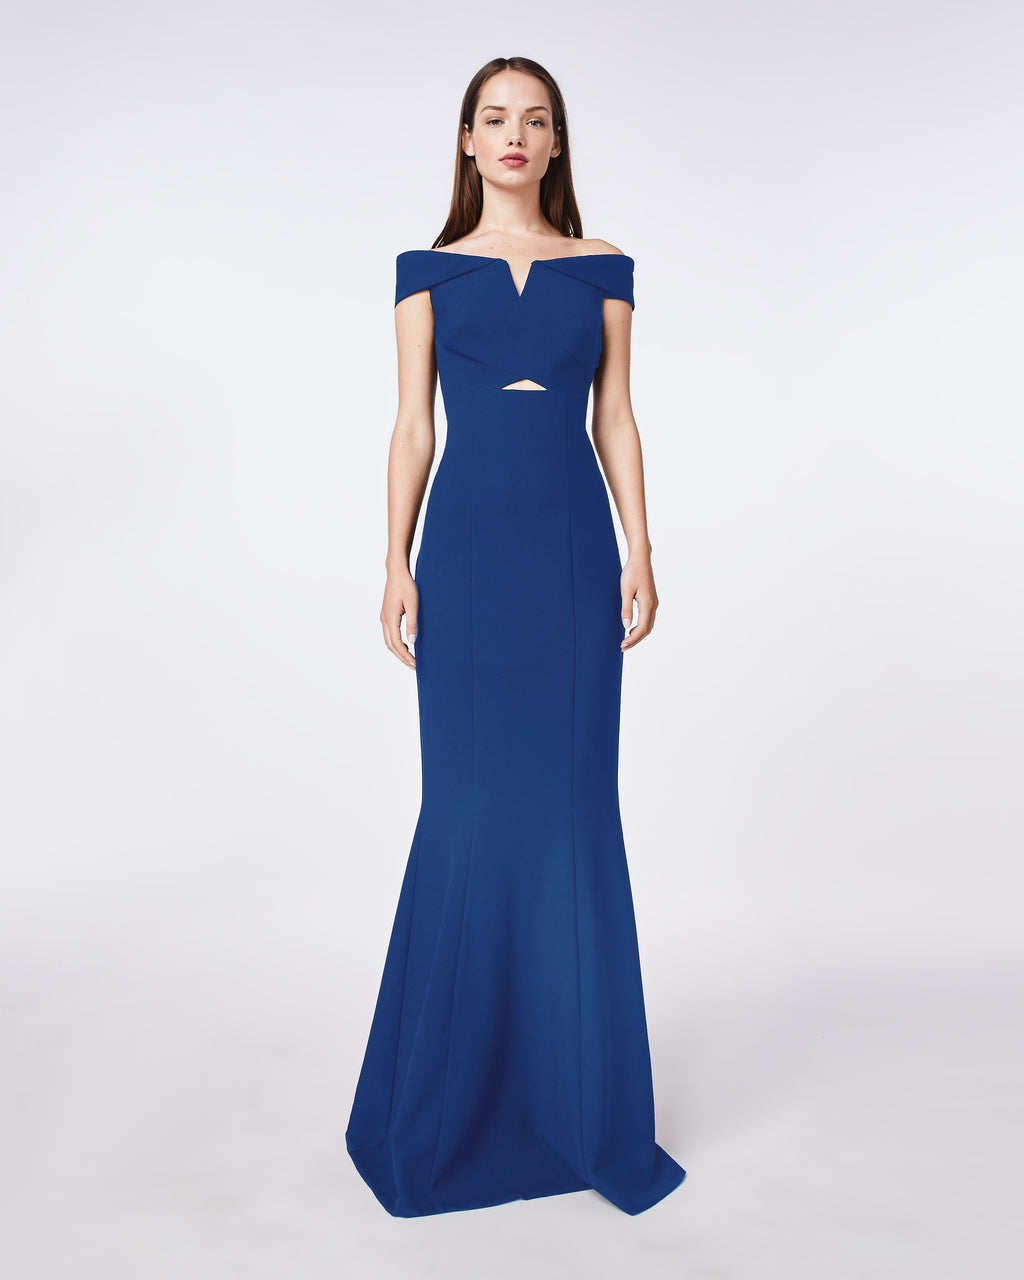 CF10279 - TECHY CREPE OFF SHOULDER V BAR GOWN - dresses - long - Sleek and sculptural, this dress skims your curves. The plunging neckline, front cut out, and off the shoulder detail ensure maximum evening allure.